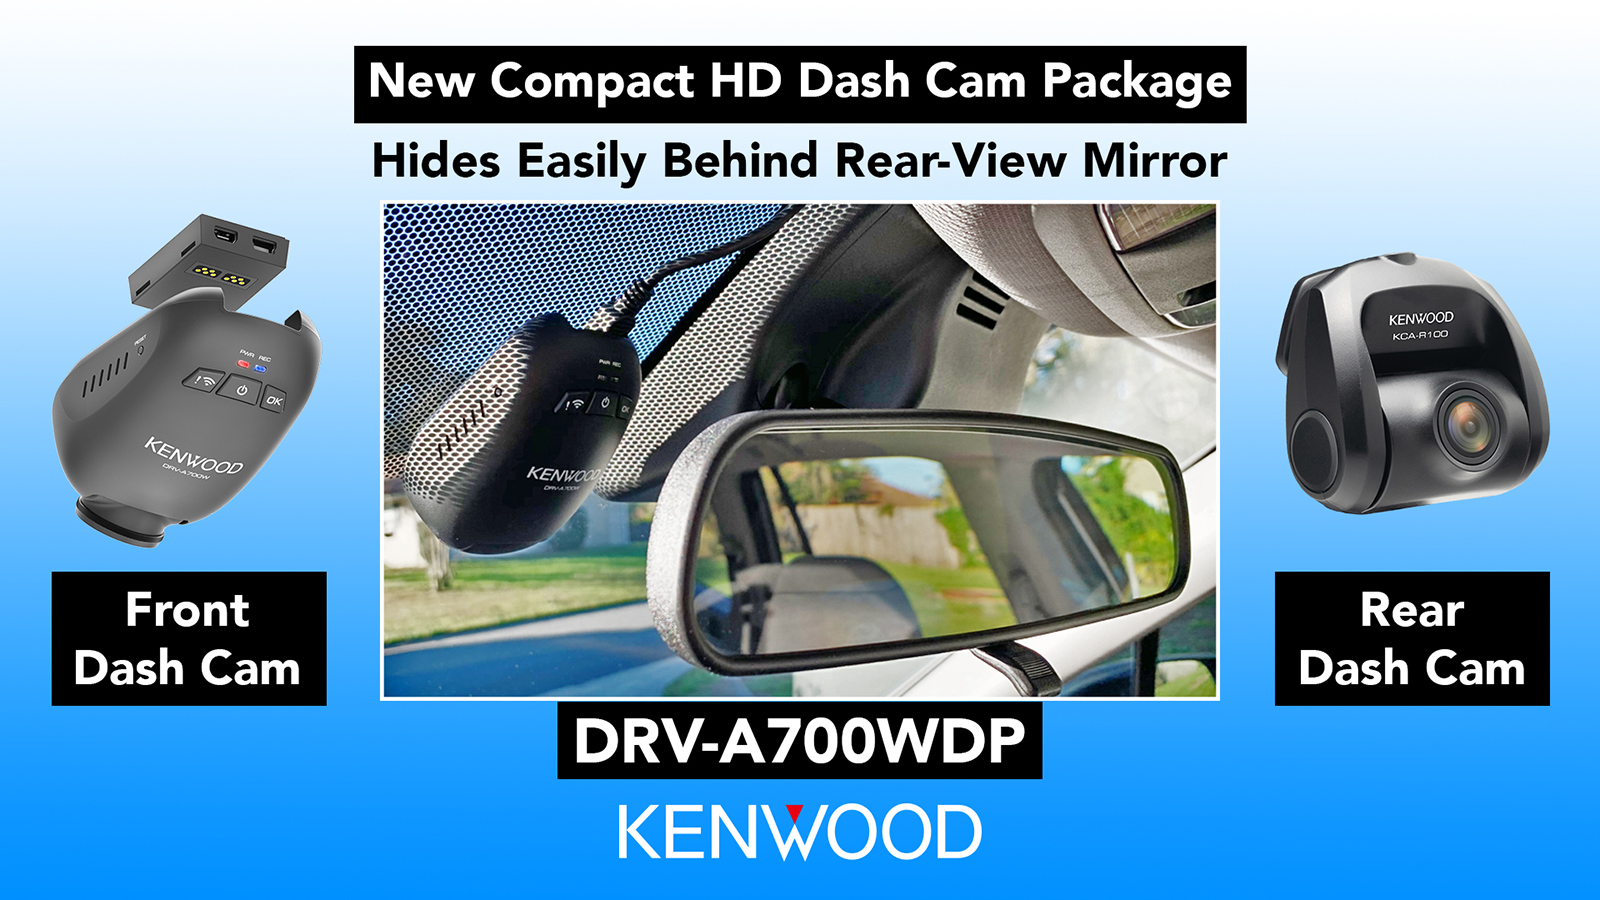 KENWOOD DRV A700WDP Compact Dash Cam CES Press Release Image 122019